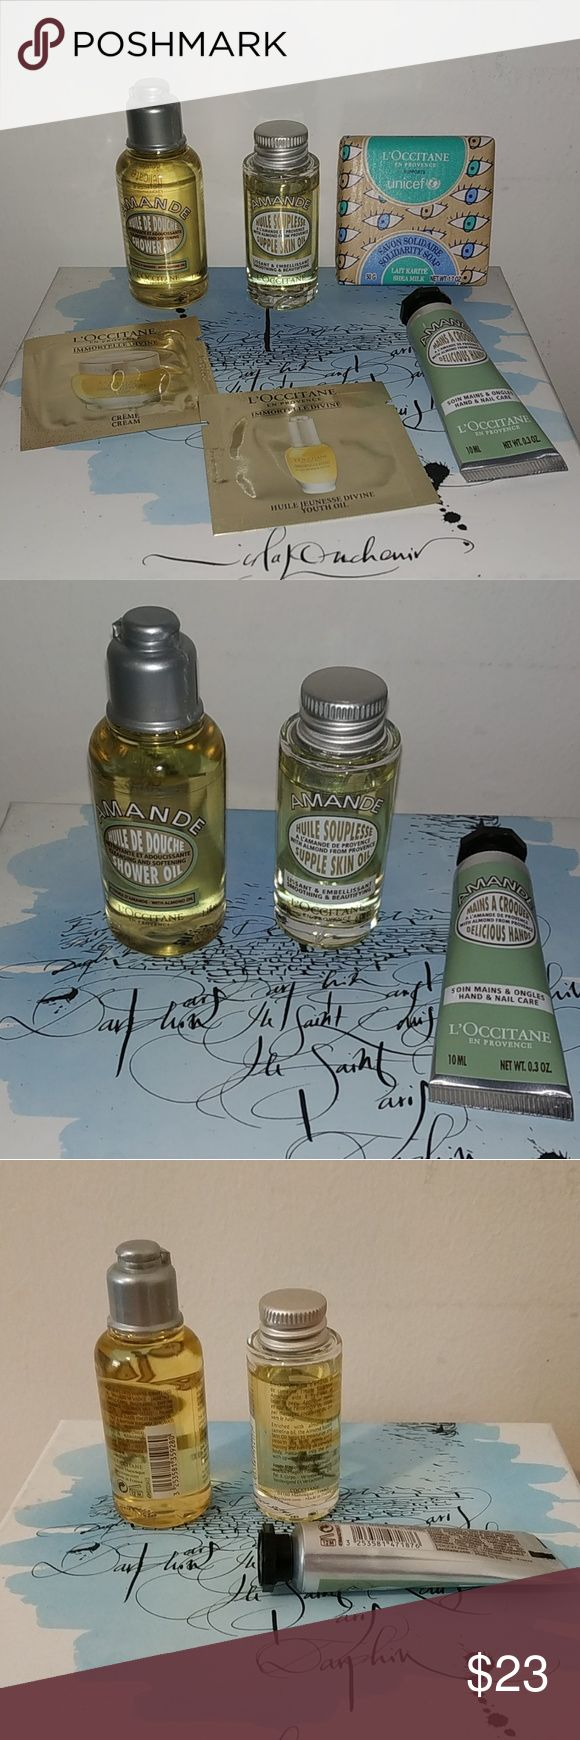 Loccitane set Shower oil, Oils for skin, Loccitane